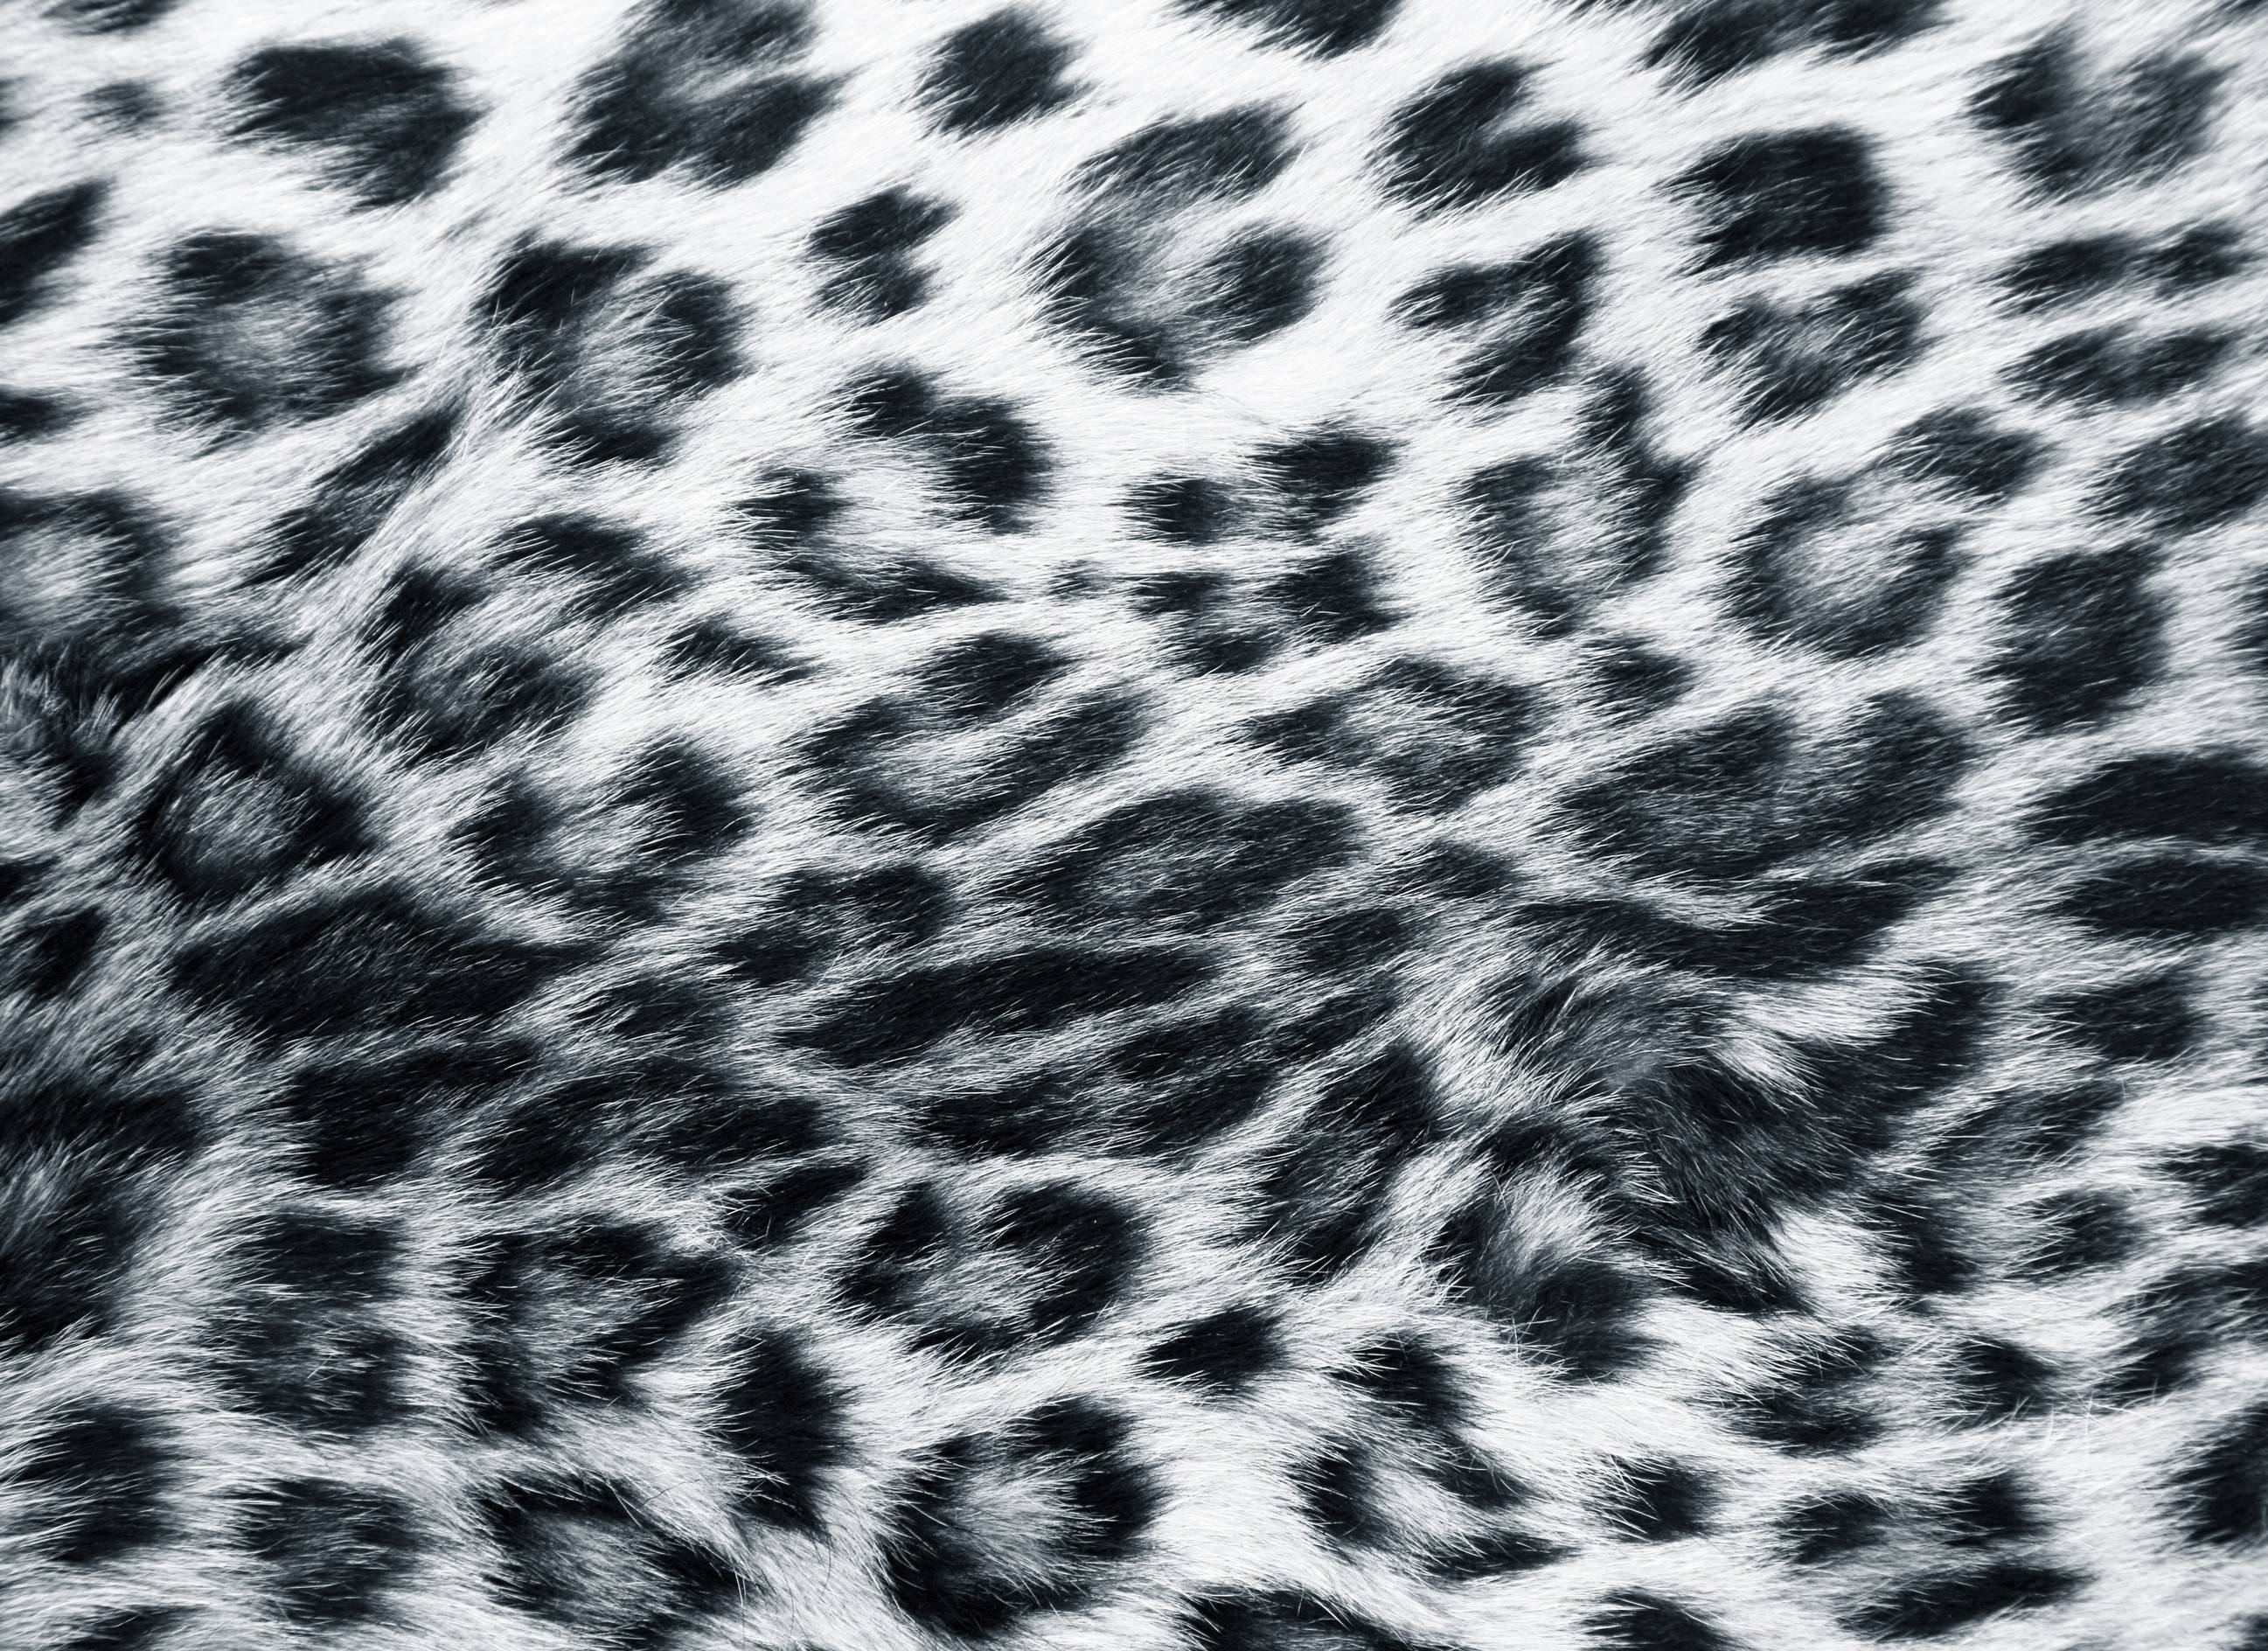 White cheetah print - photo#27